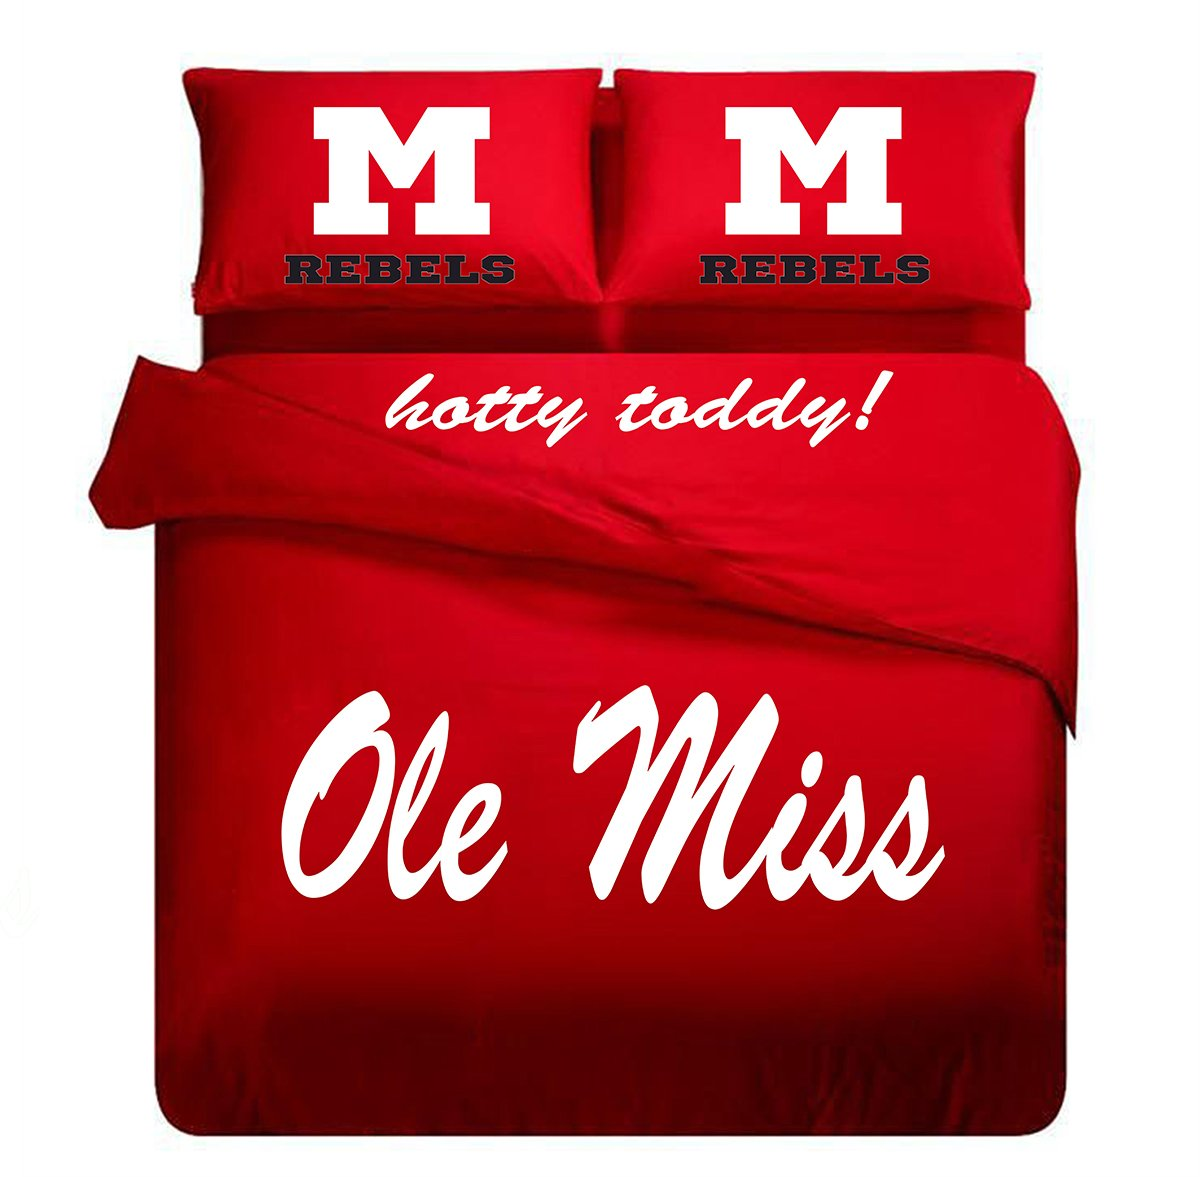 Ole Miss College Red Duvet Cover , Ole Miss Bedding